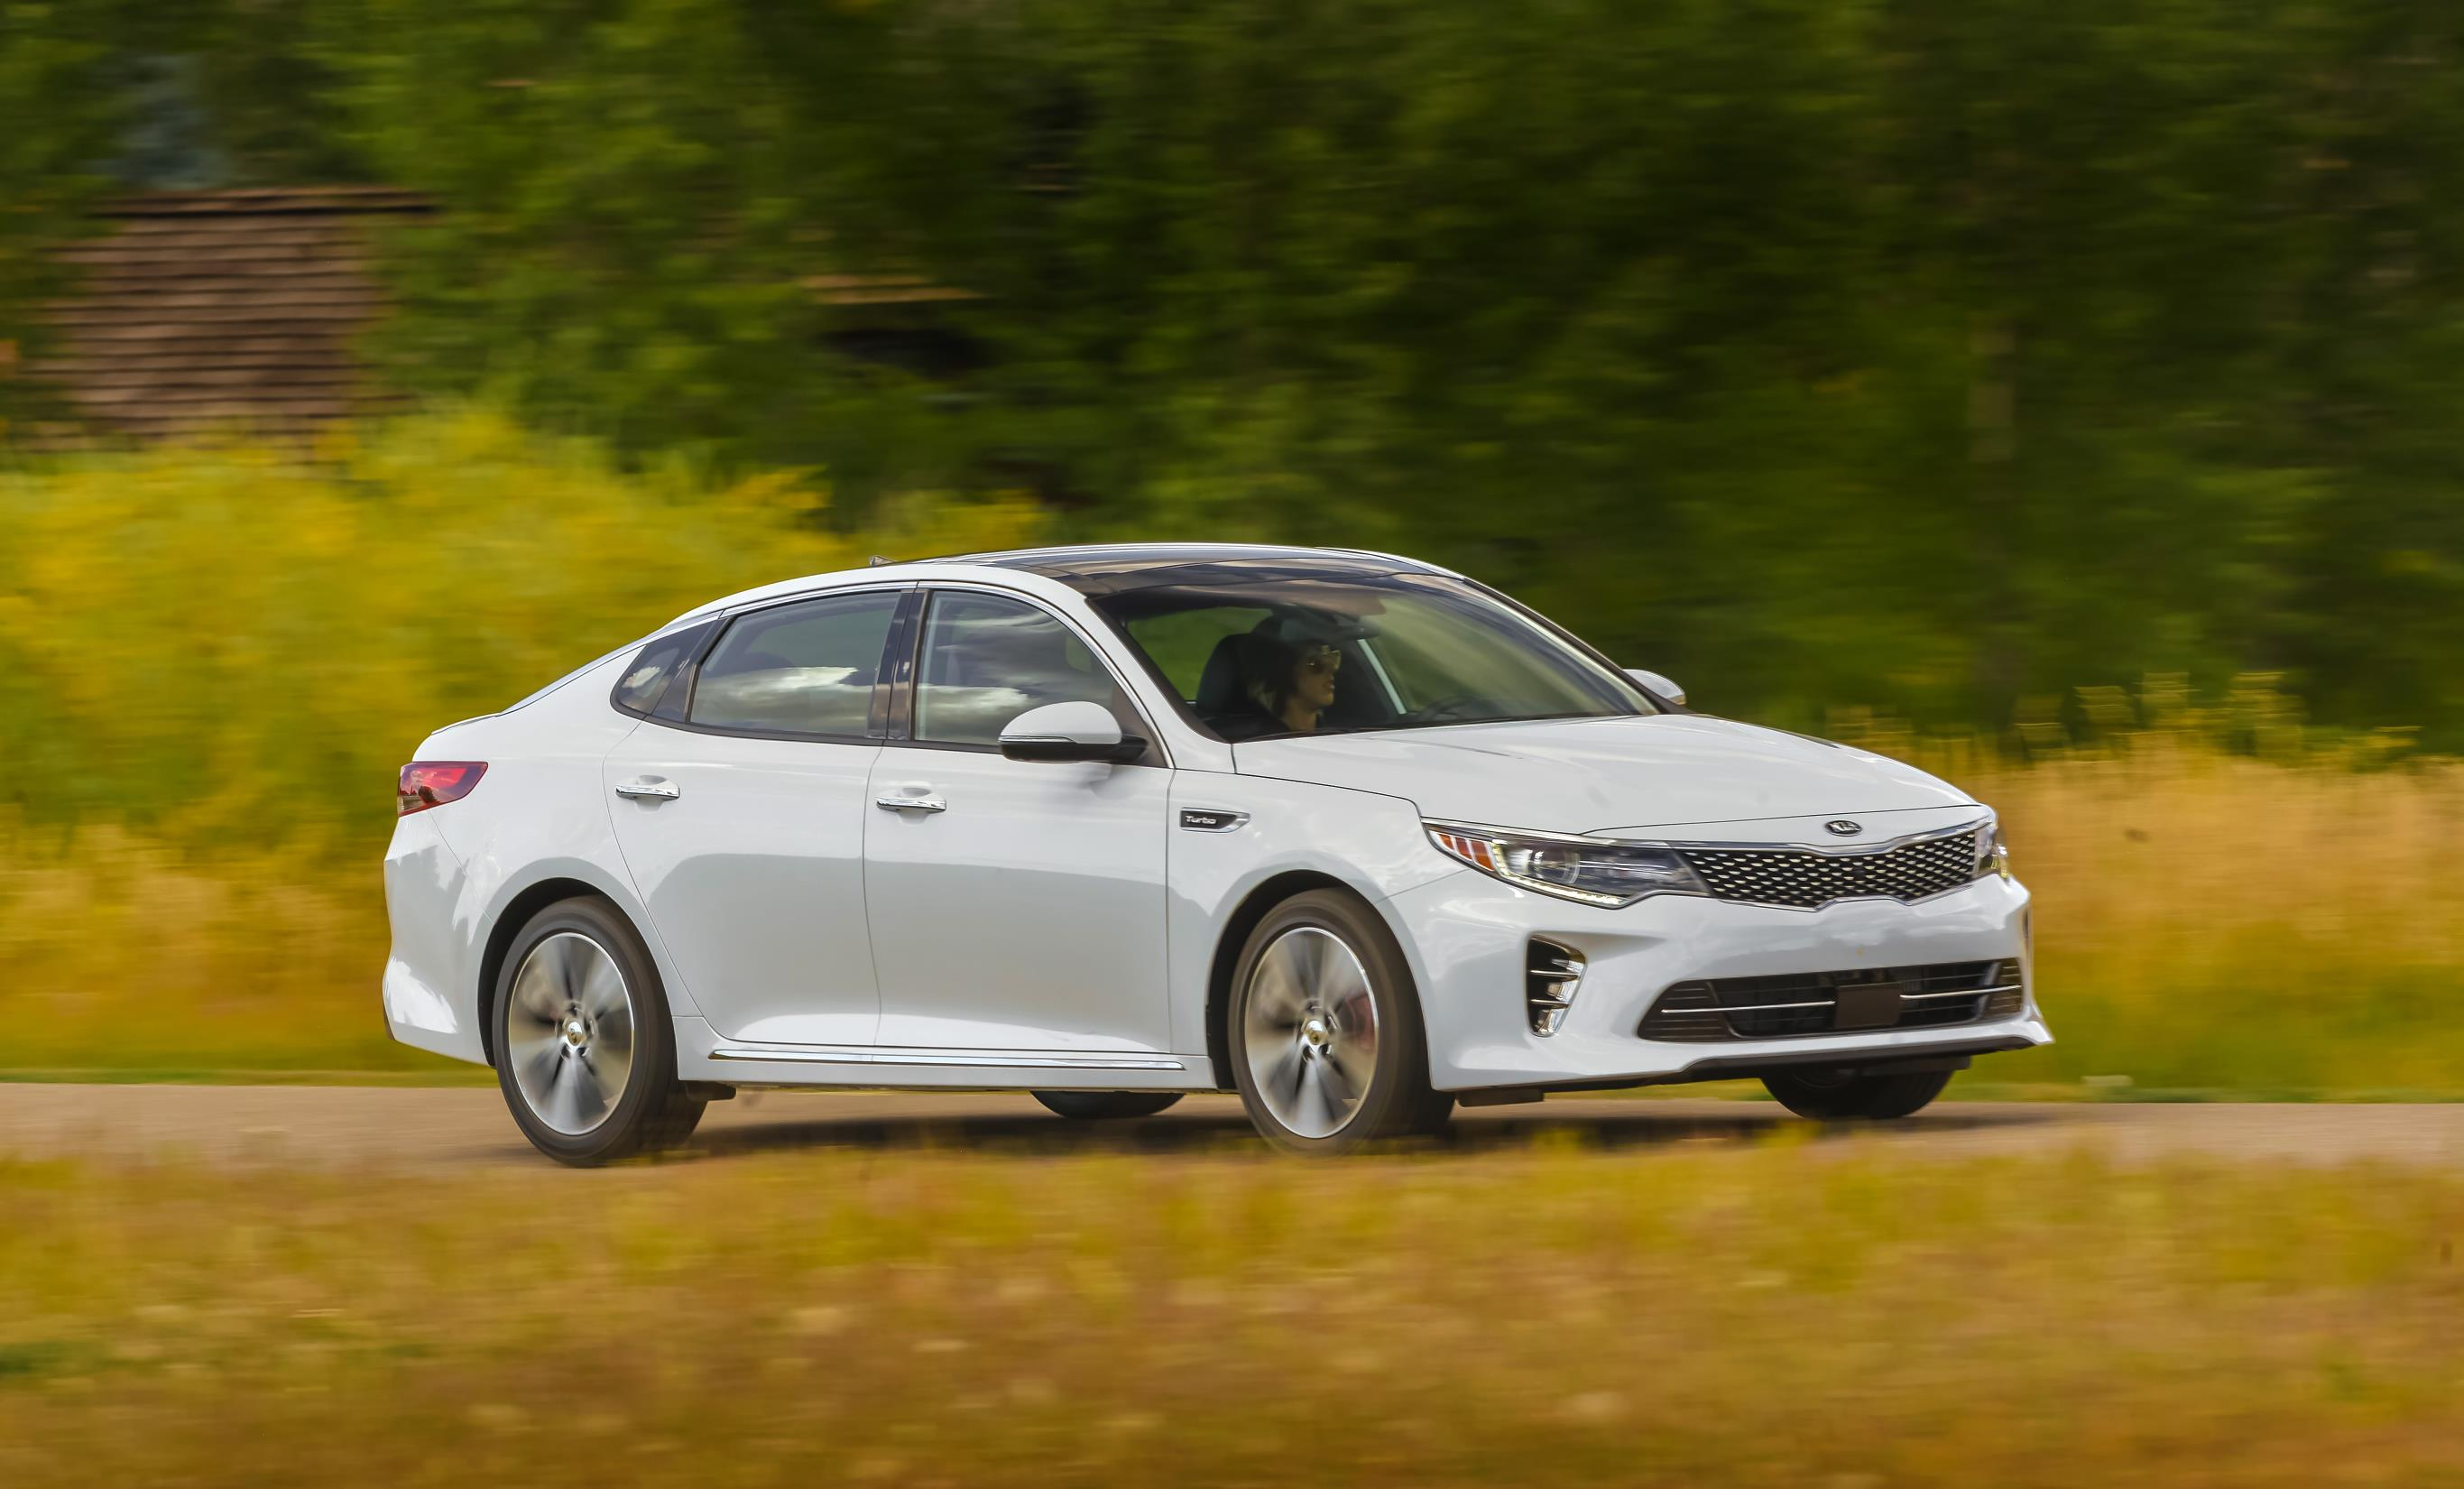 Kia Optima, one of Kia's top selling vehicles in calendar year 2017